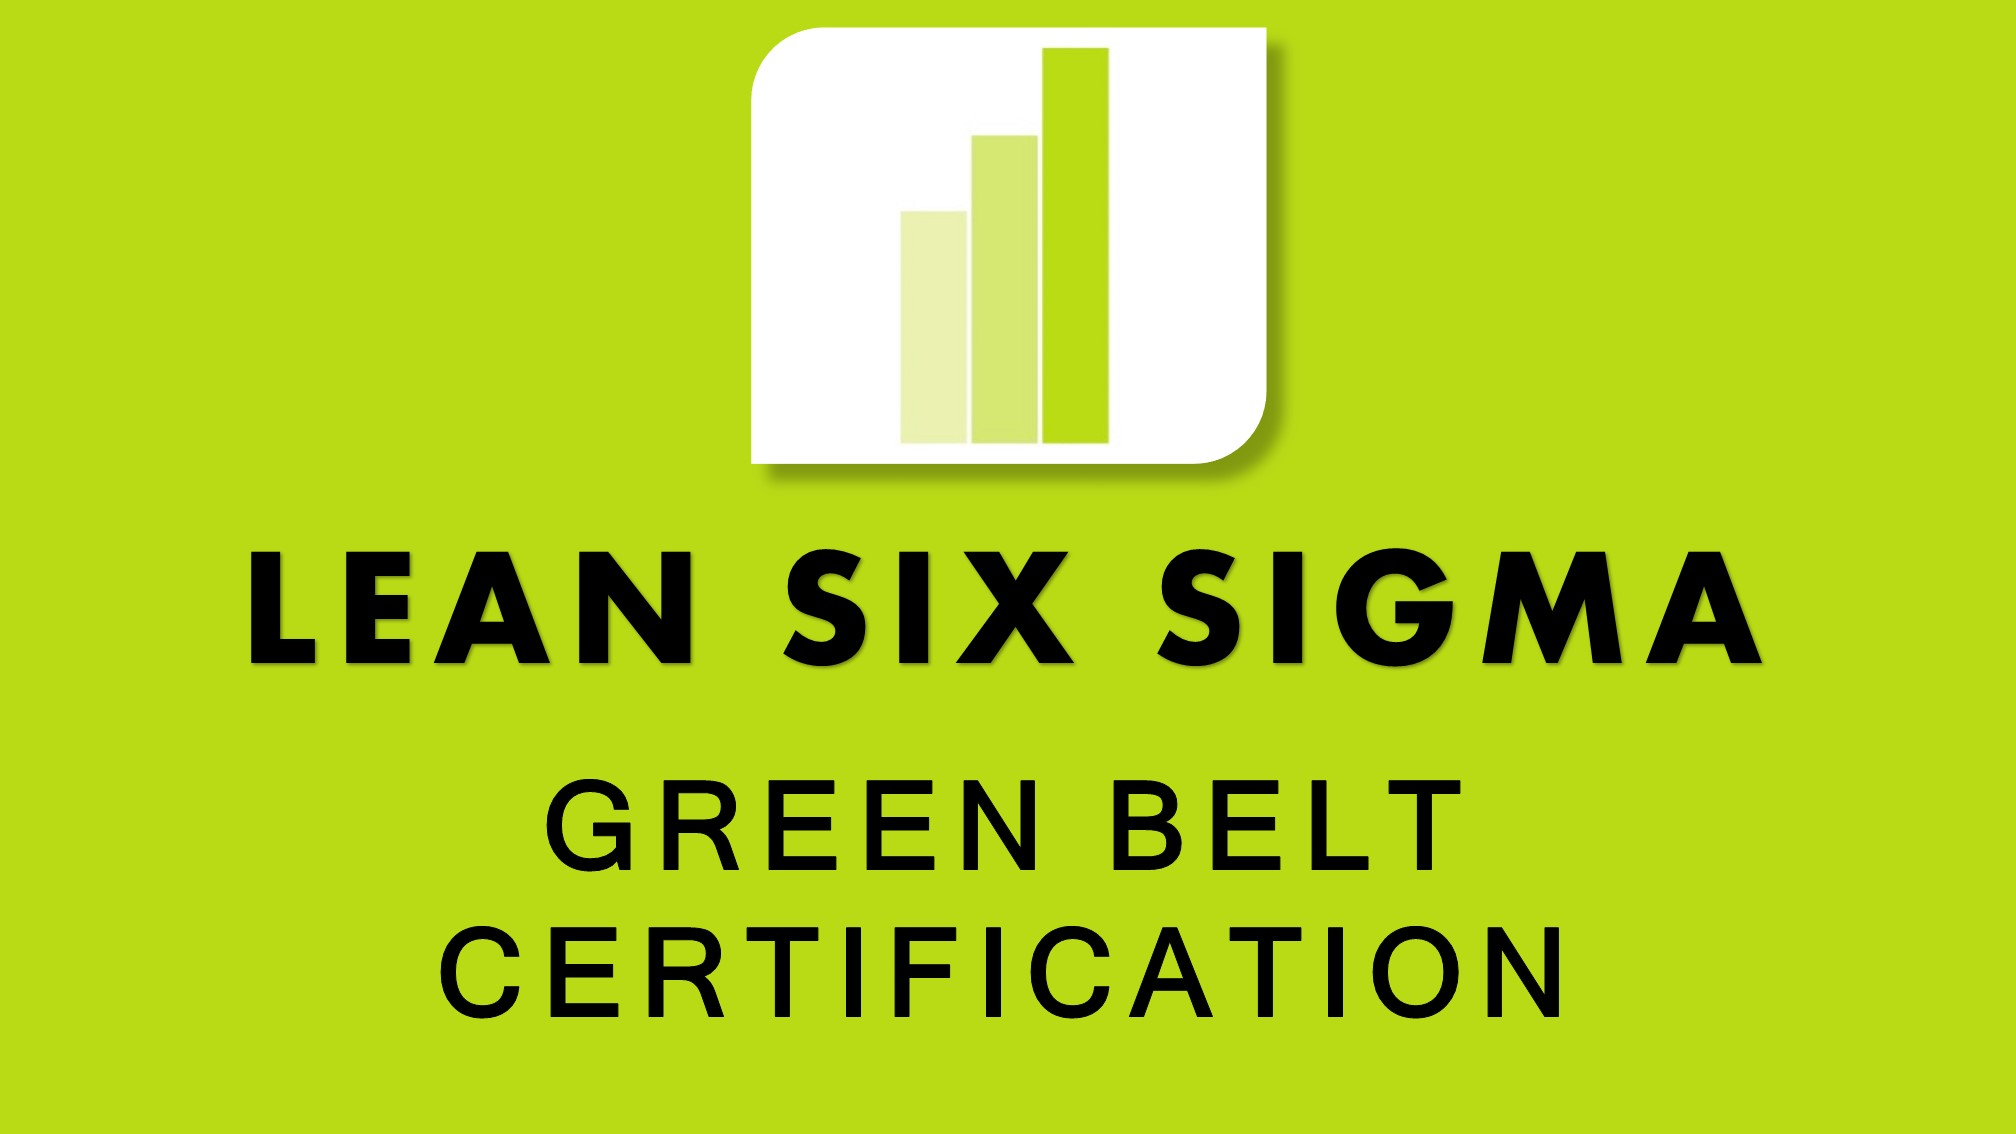 Lean six sigma green belt training course and certification lean six sigma green belt xflitez Choice Image